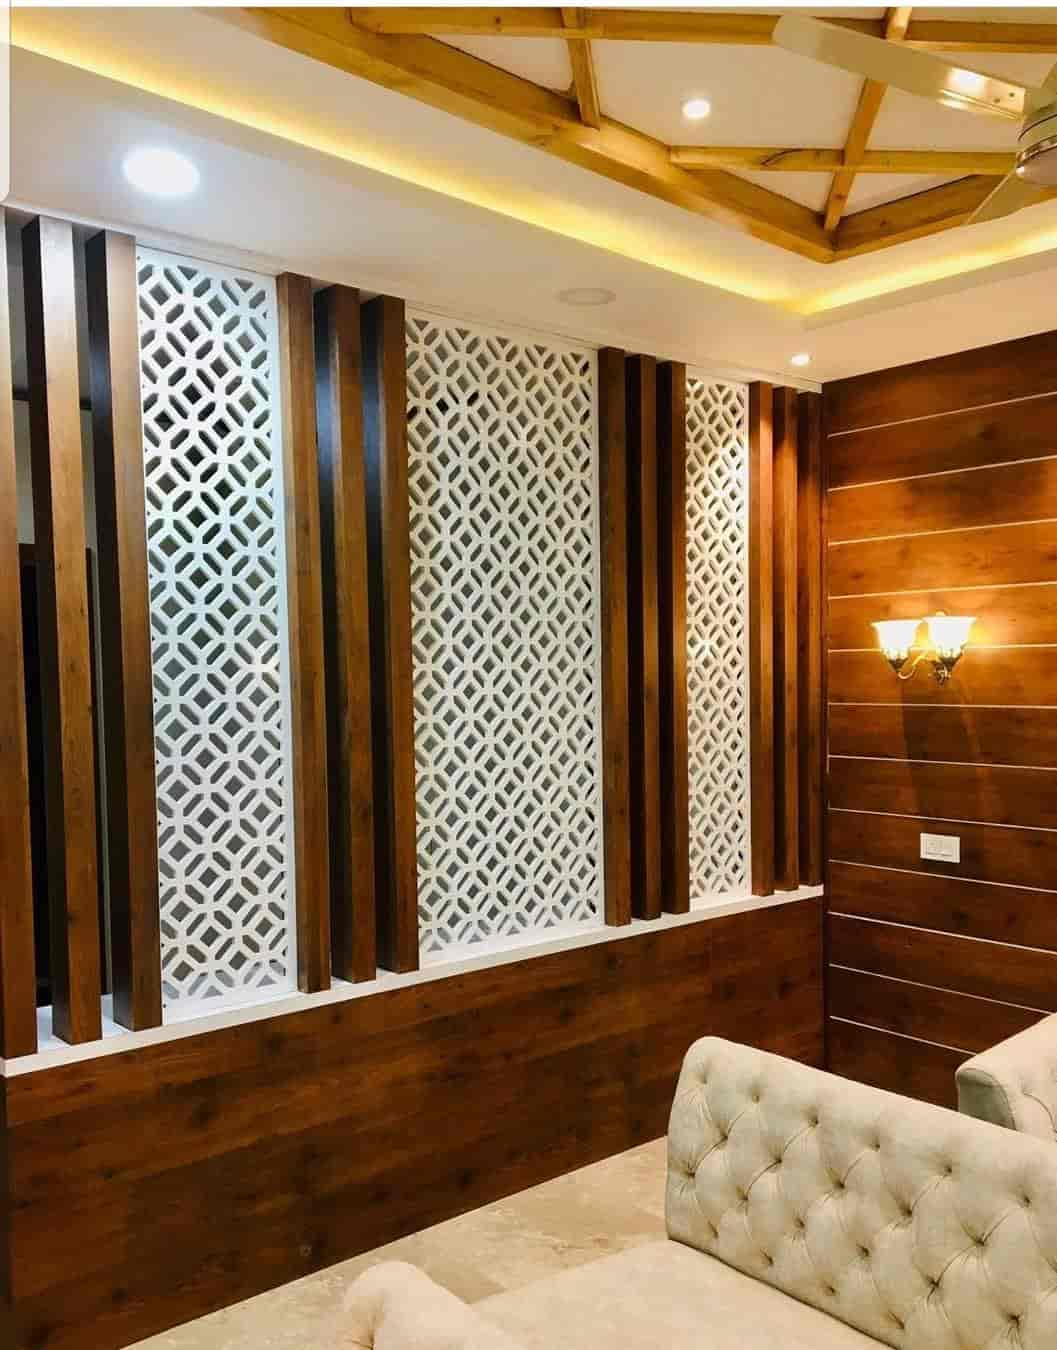 Top 100 Interior Designers For Office In Bhopal इ ट र यर द स ग न र स फ र ऑफ स भ प ल Best Office Cabin Designer Justdial